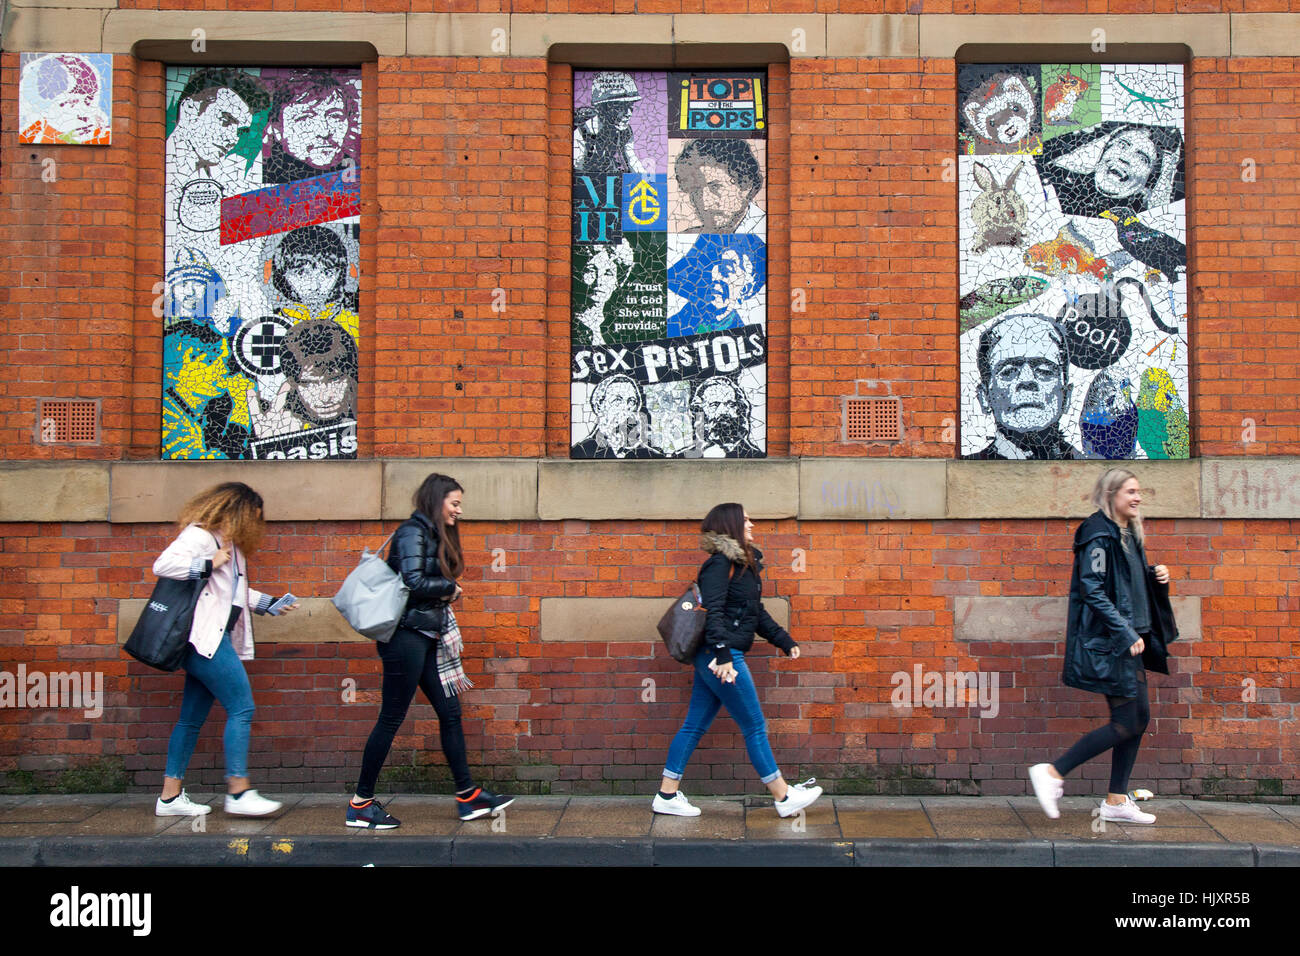 Mosiacs & faces of famous icons in Tib Street, Northern Quarter, Manchester, UK - Stock Image